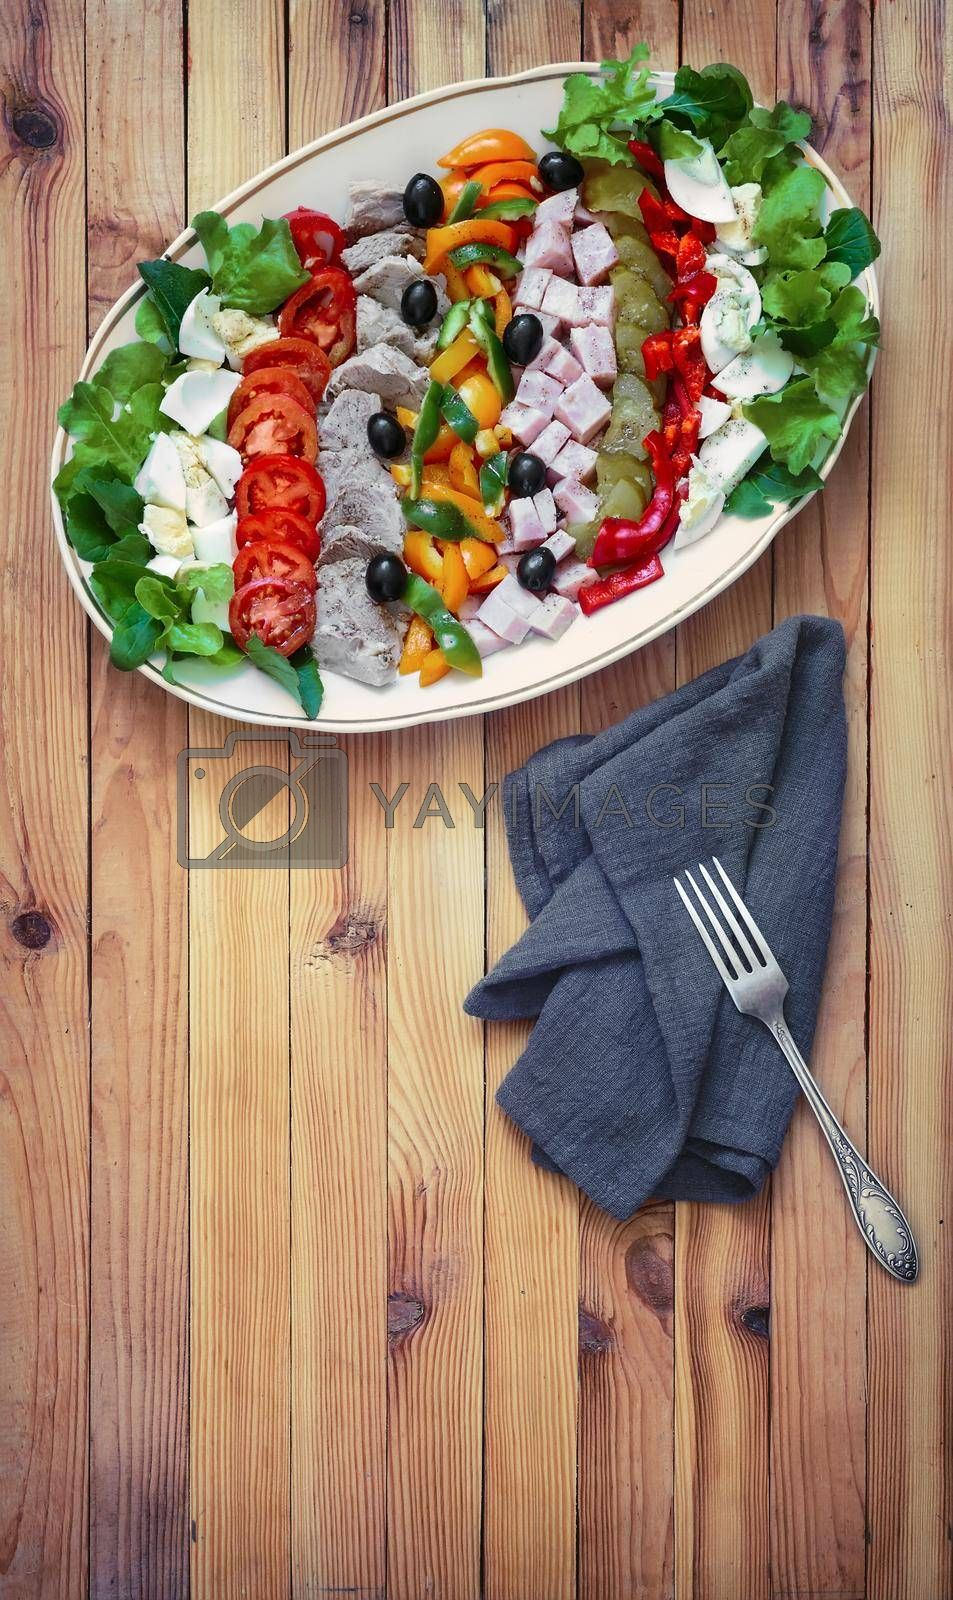 A popular dish of American cuisine - Cobb salad, consisting of greens, eggs, tomatoes, cheese, meat products, stacked in rows on a wide dish and poured sauce.